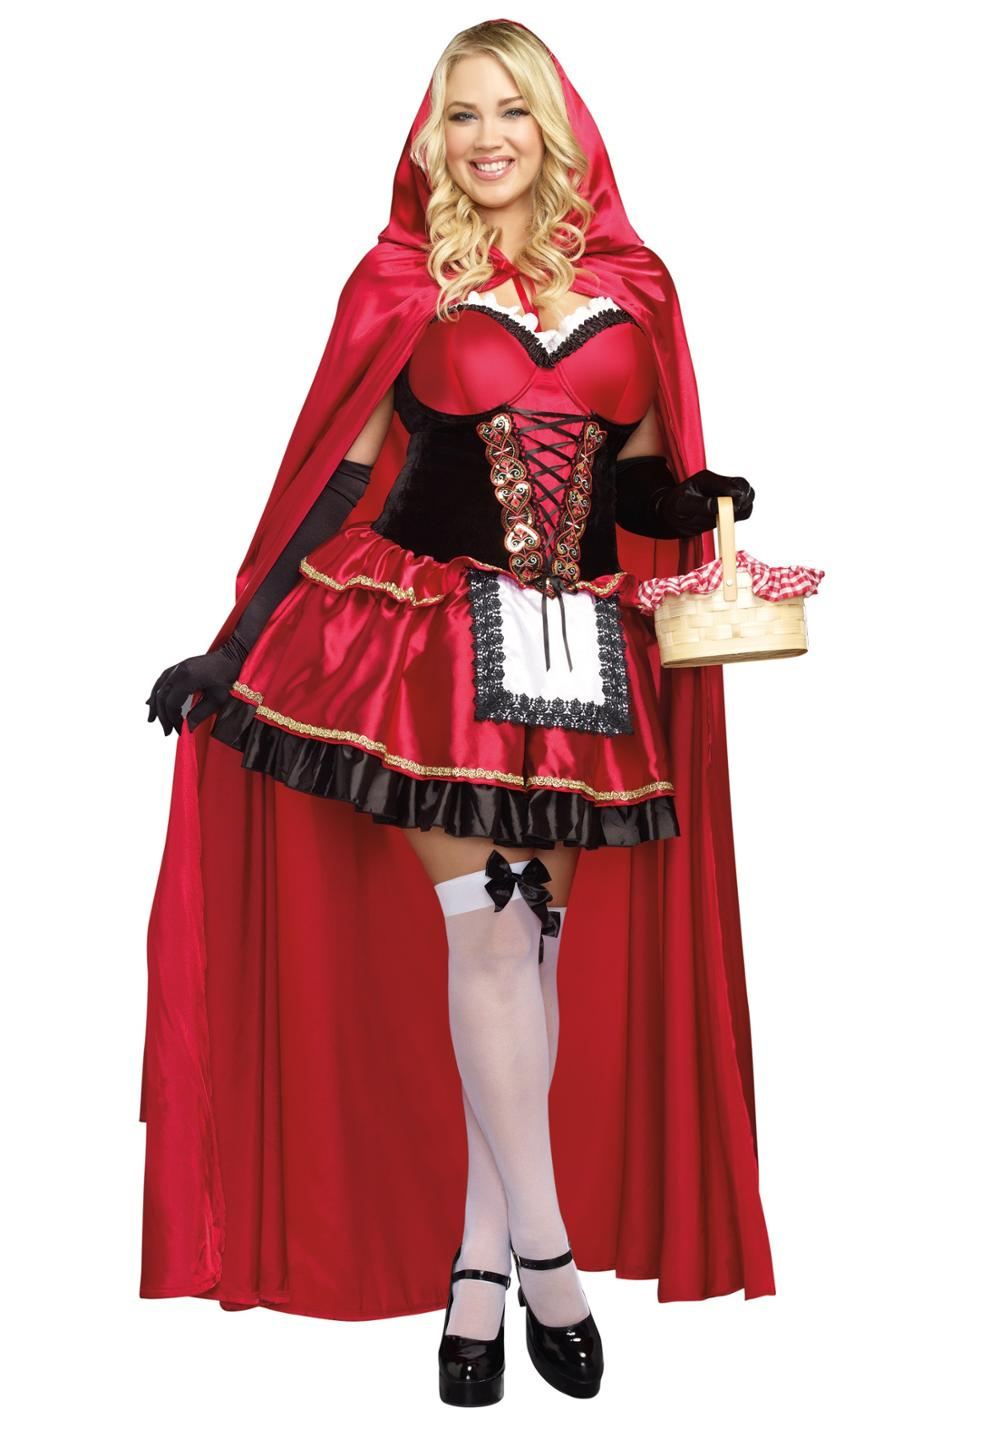 Adult Deluex Fairytale Red Riding Hood Costume Women Halloween Cosplay Fancy Dress with Long Capes